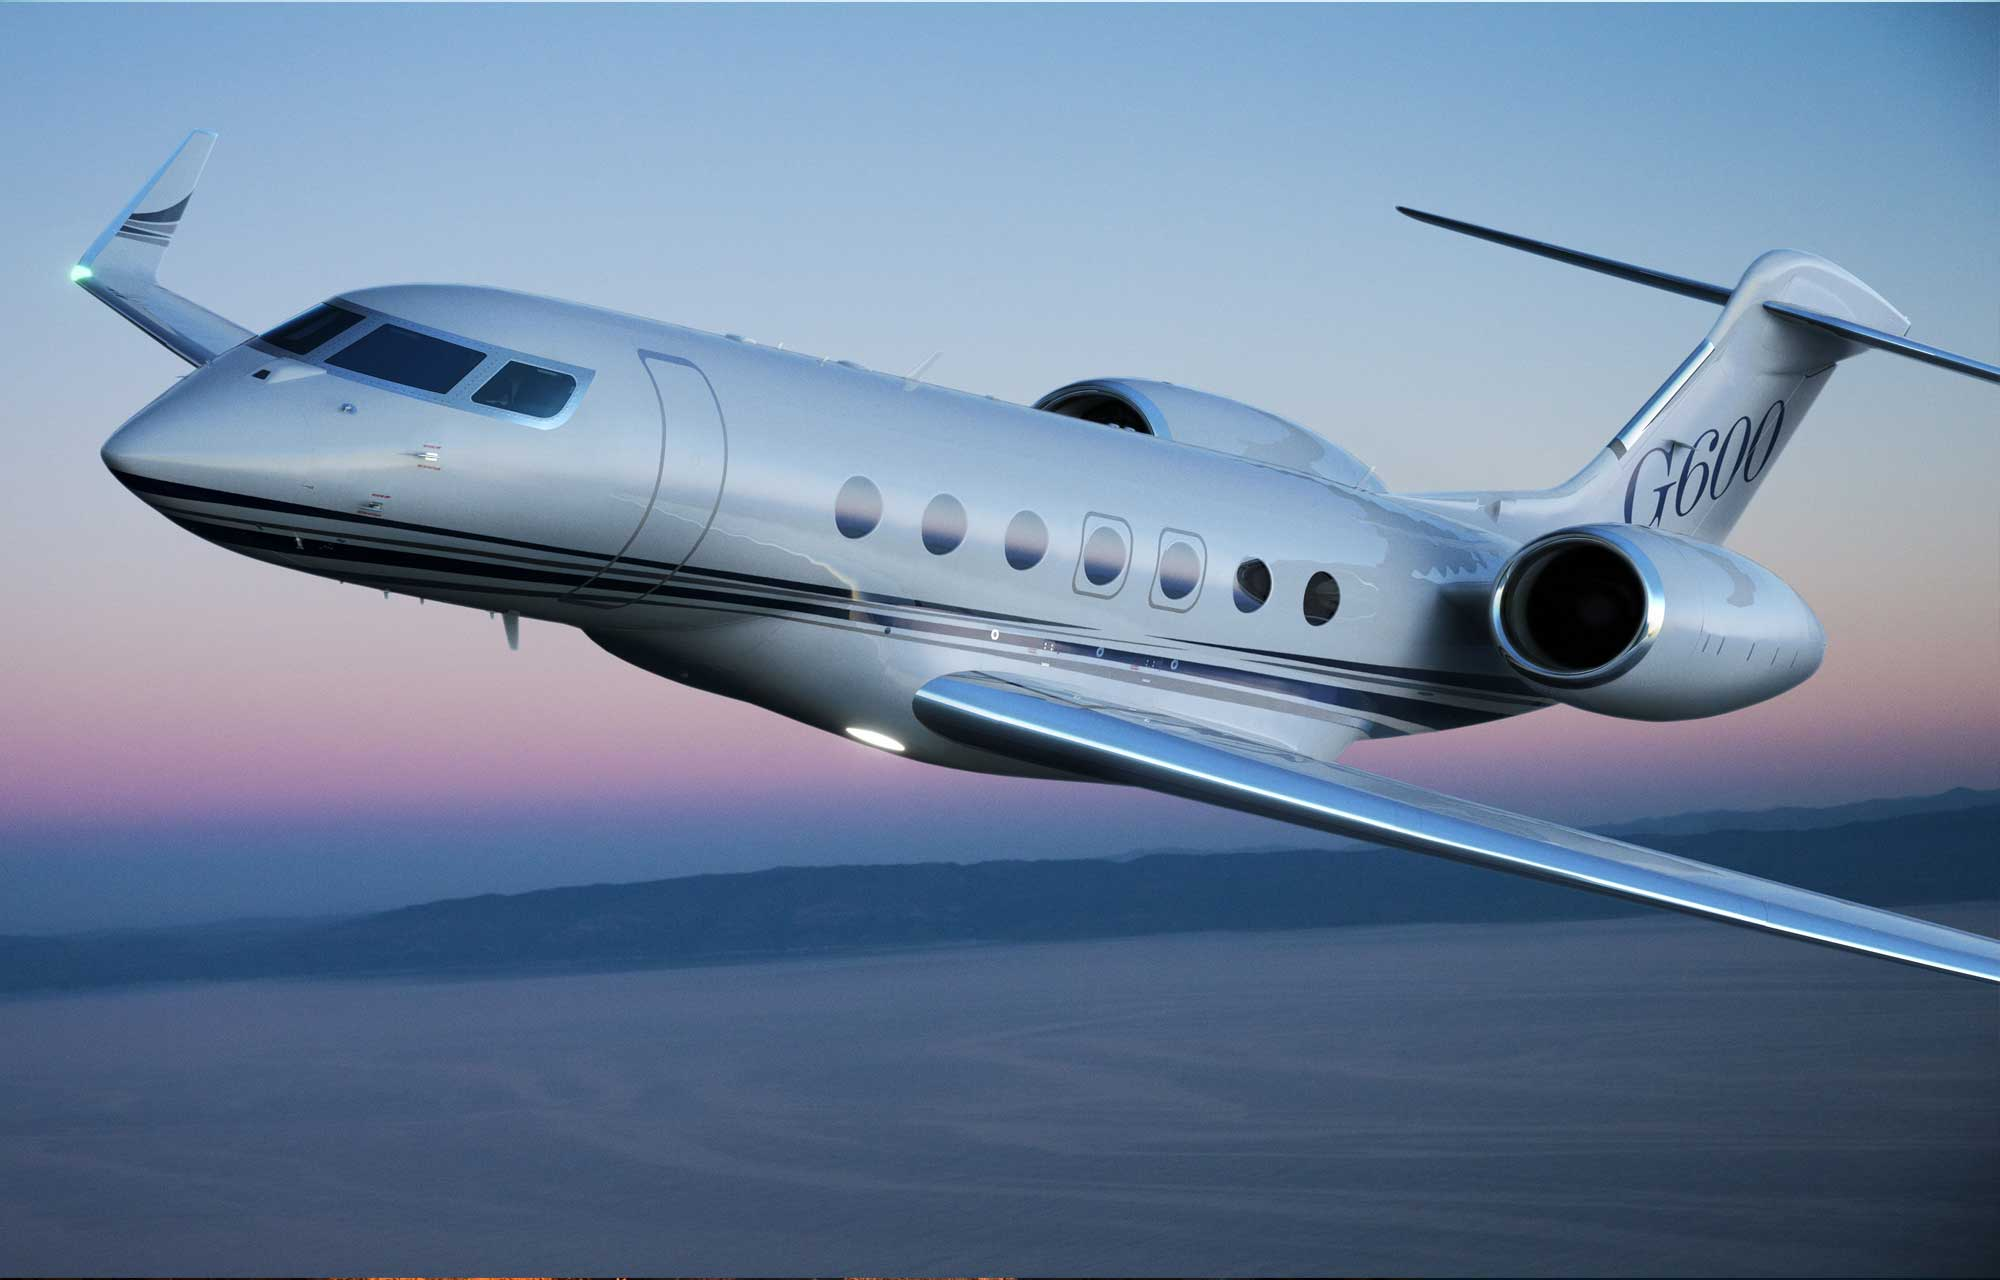 Related model: Gulfstream G600